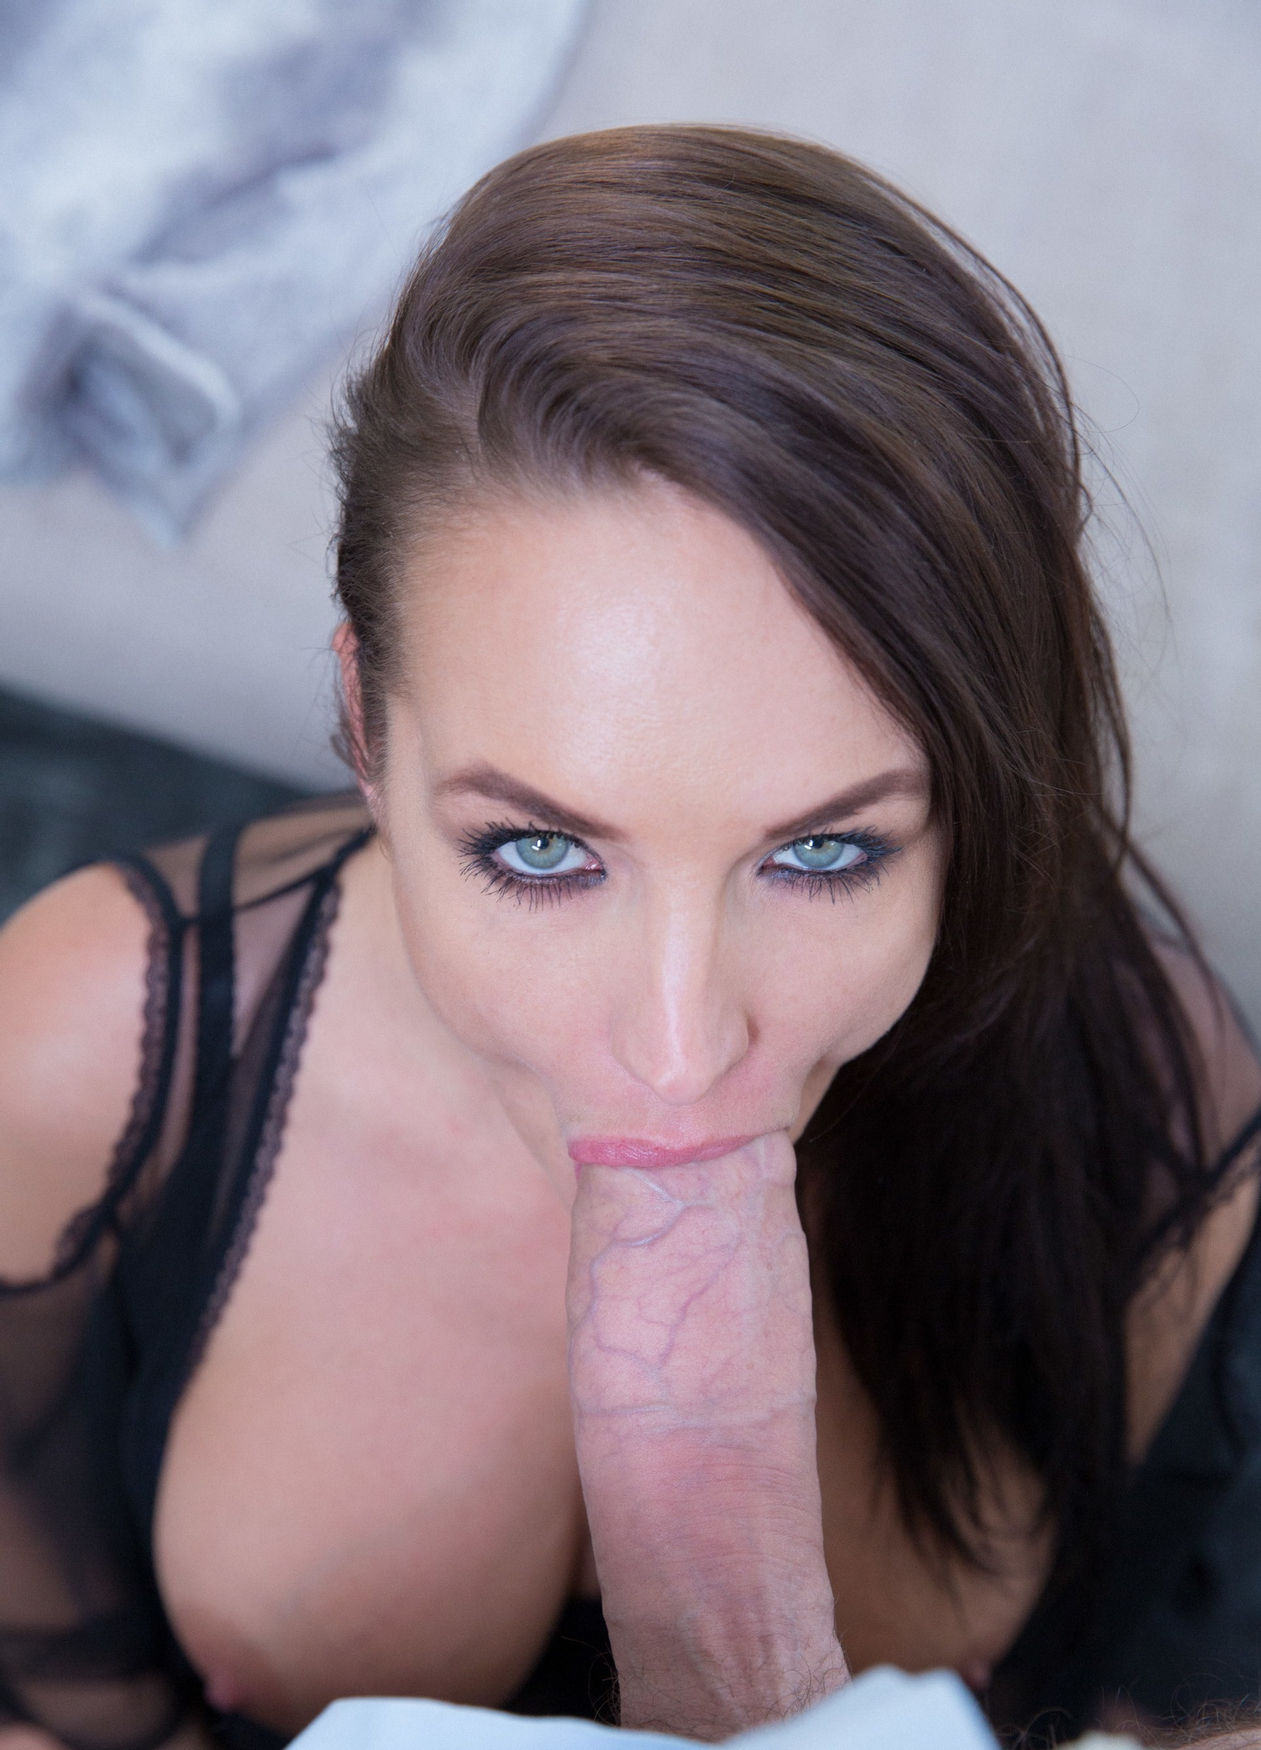 Sucking on some Big Dick while staring into your Soul